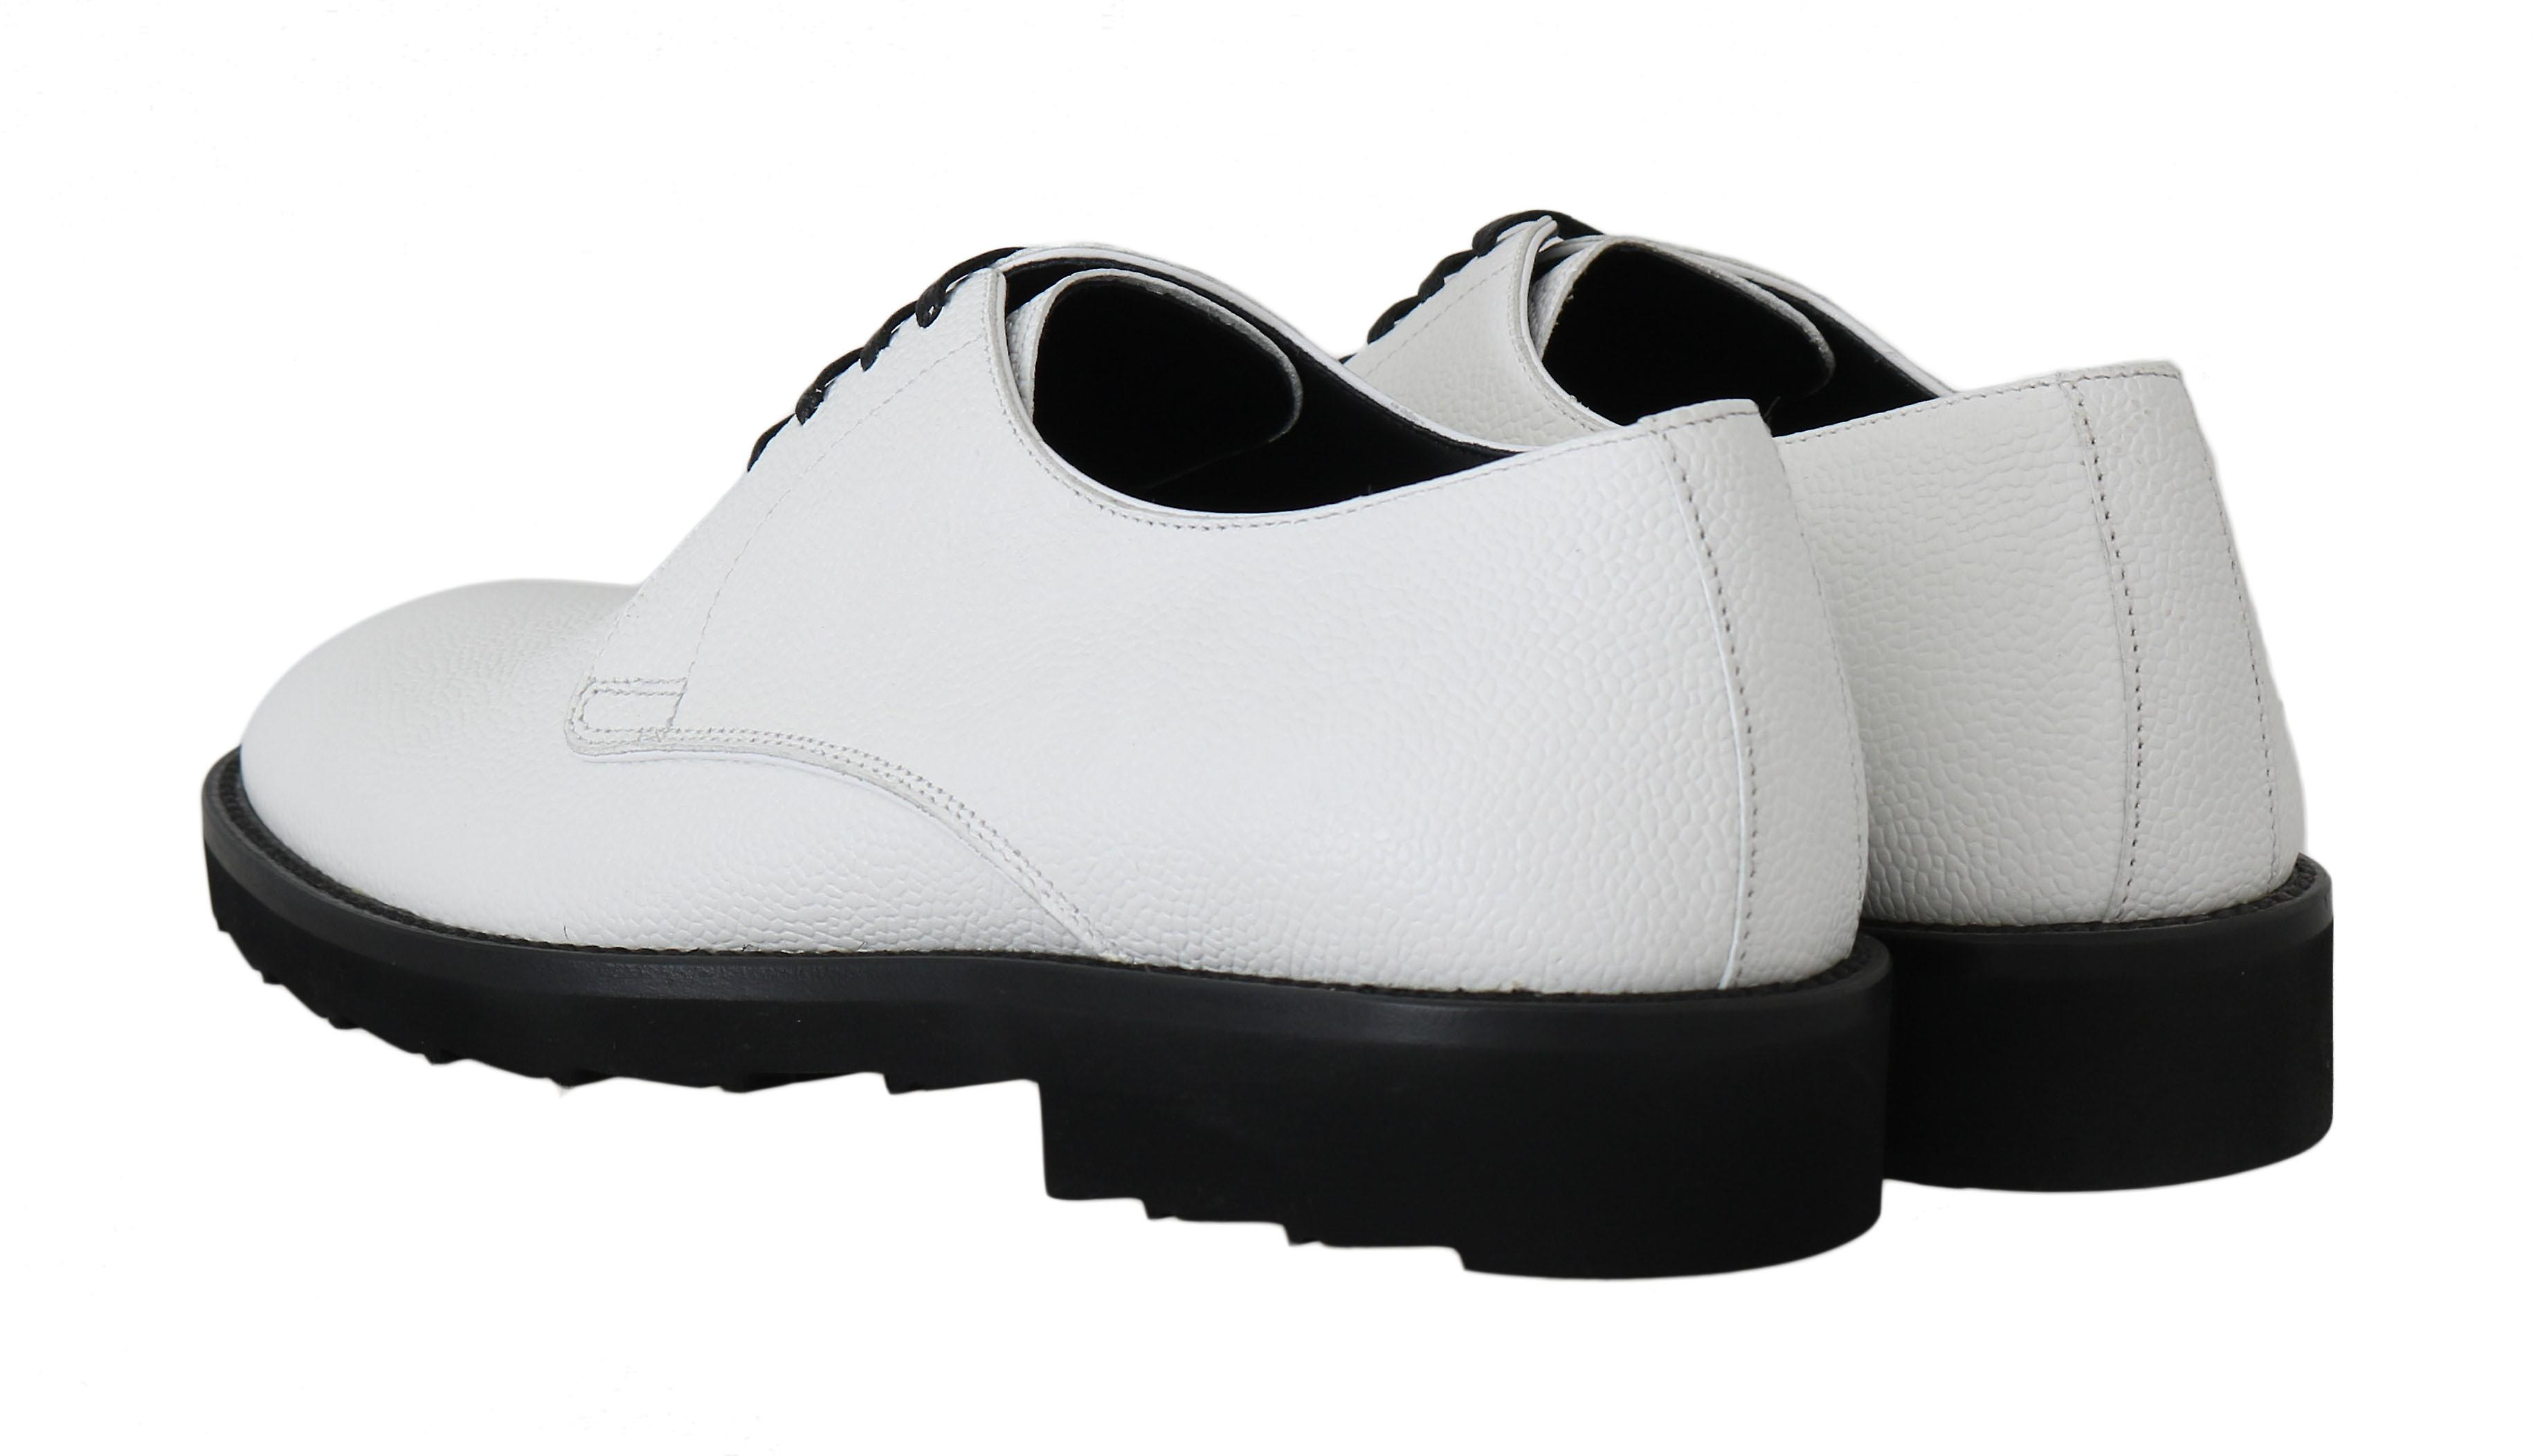 White Leather Derby Dress Formal Shoes With Contrast Sole